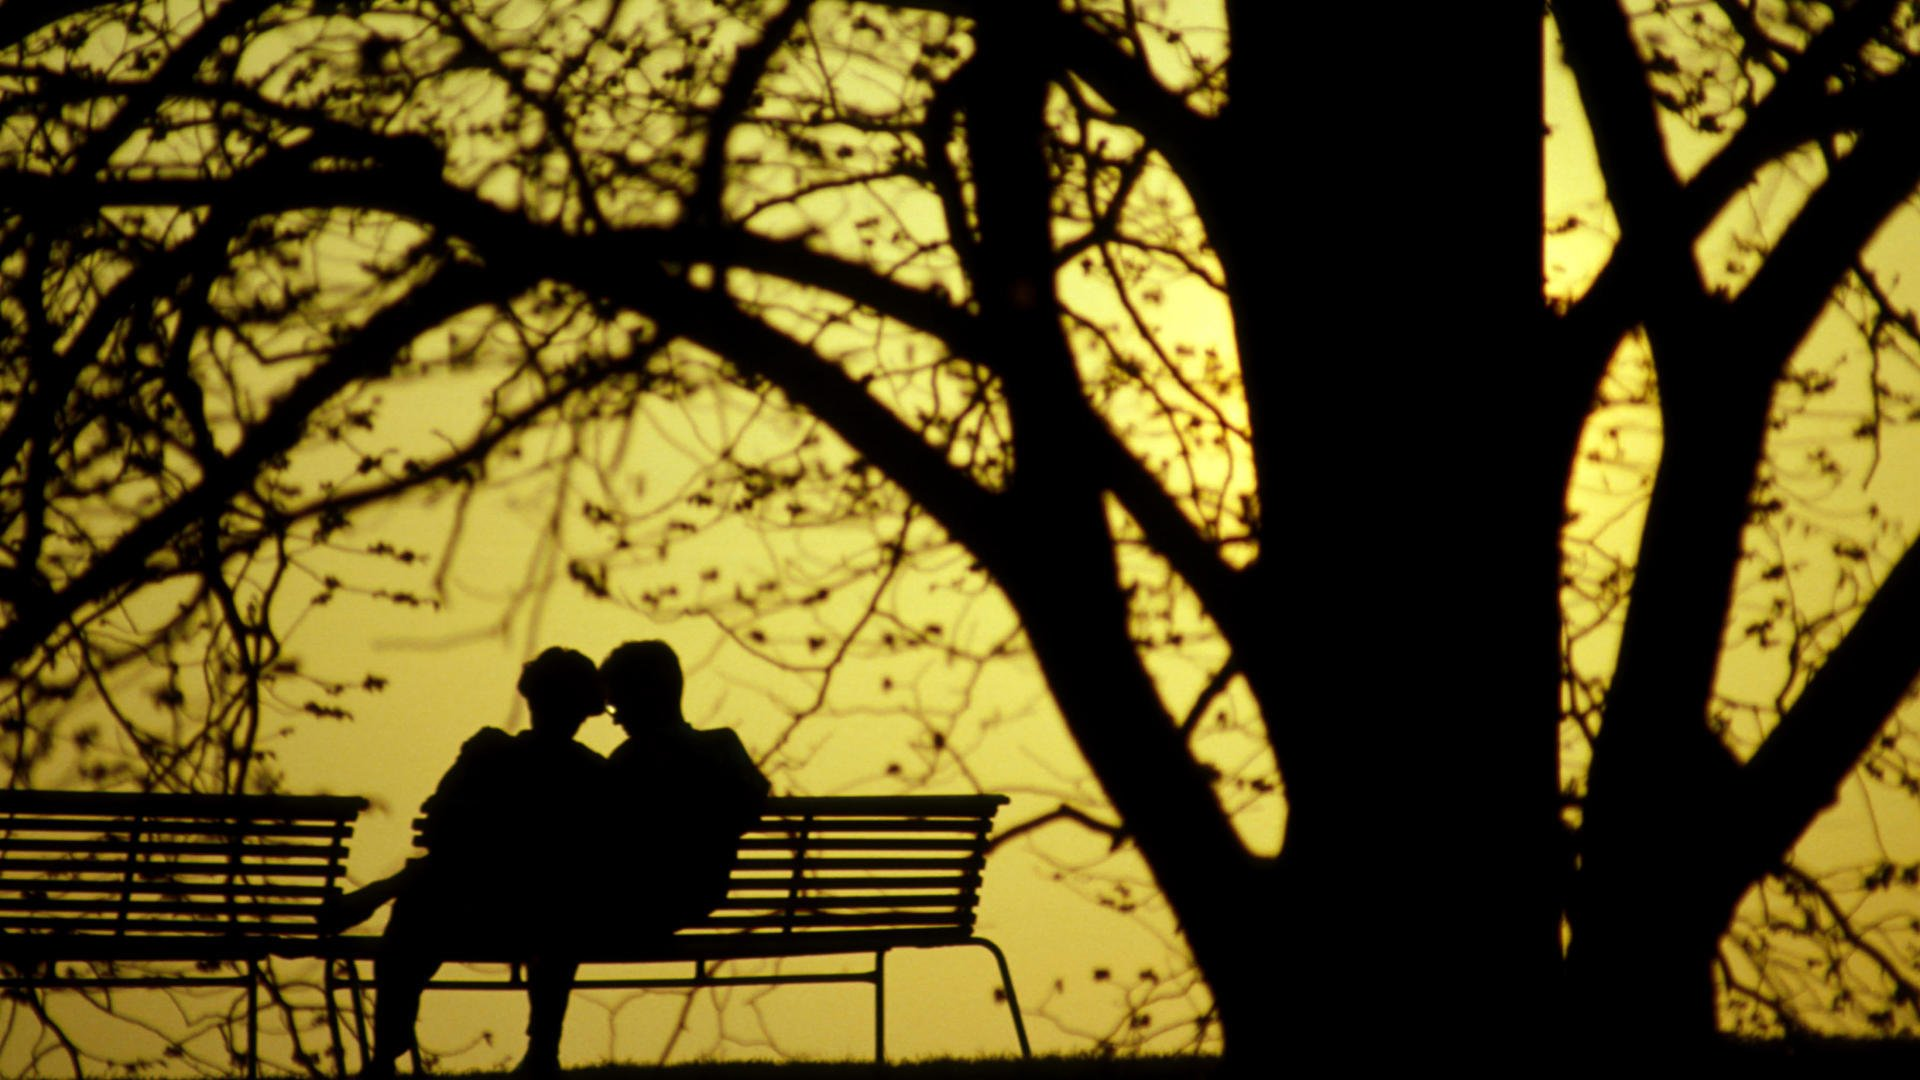 Girl And Boy Sitting Together Wallpaper Photography Couple Love Tree Silhouette Romance Bench Park